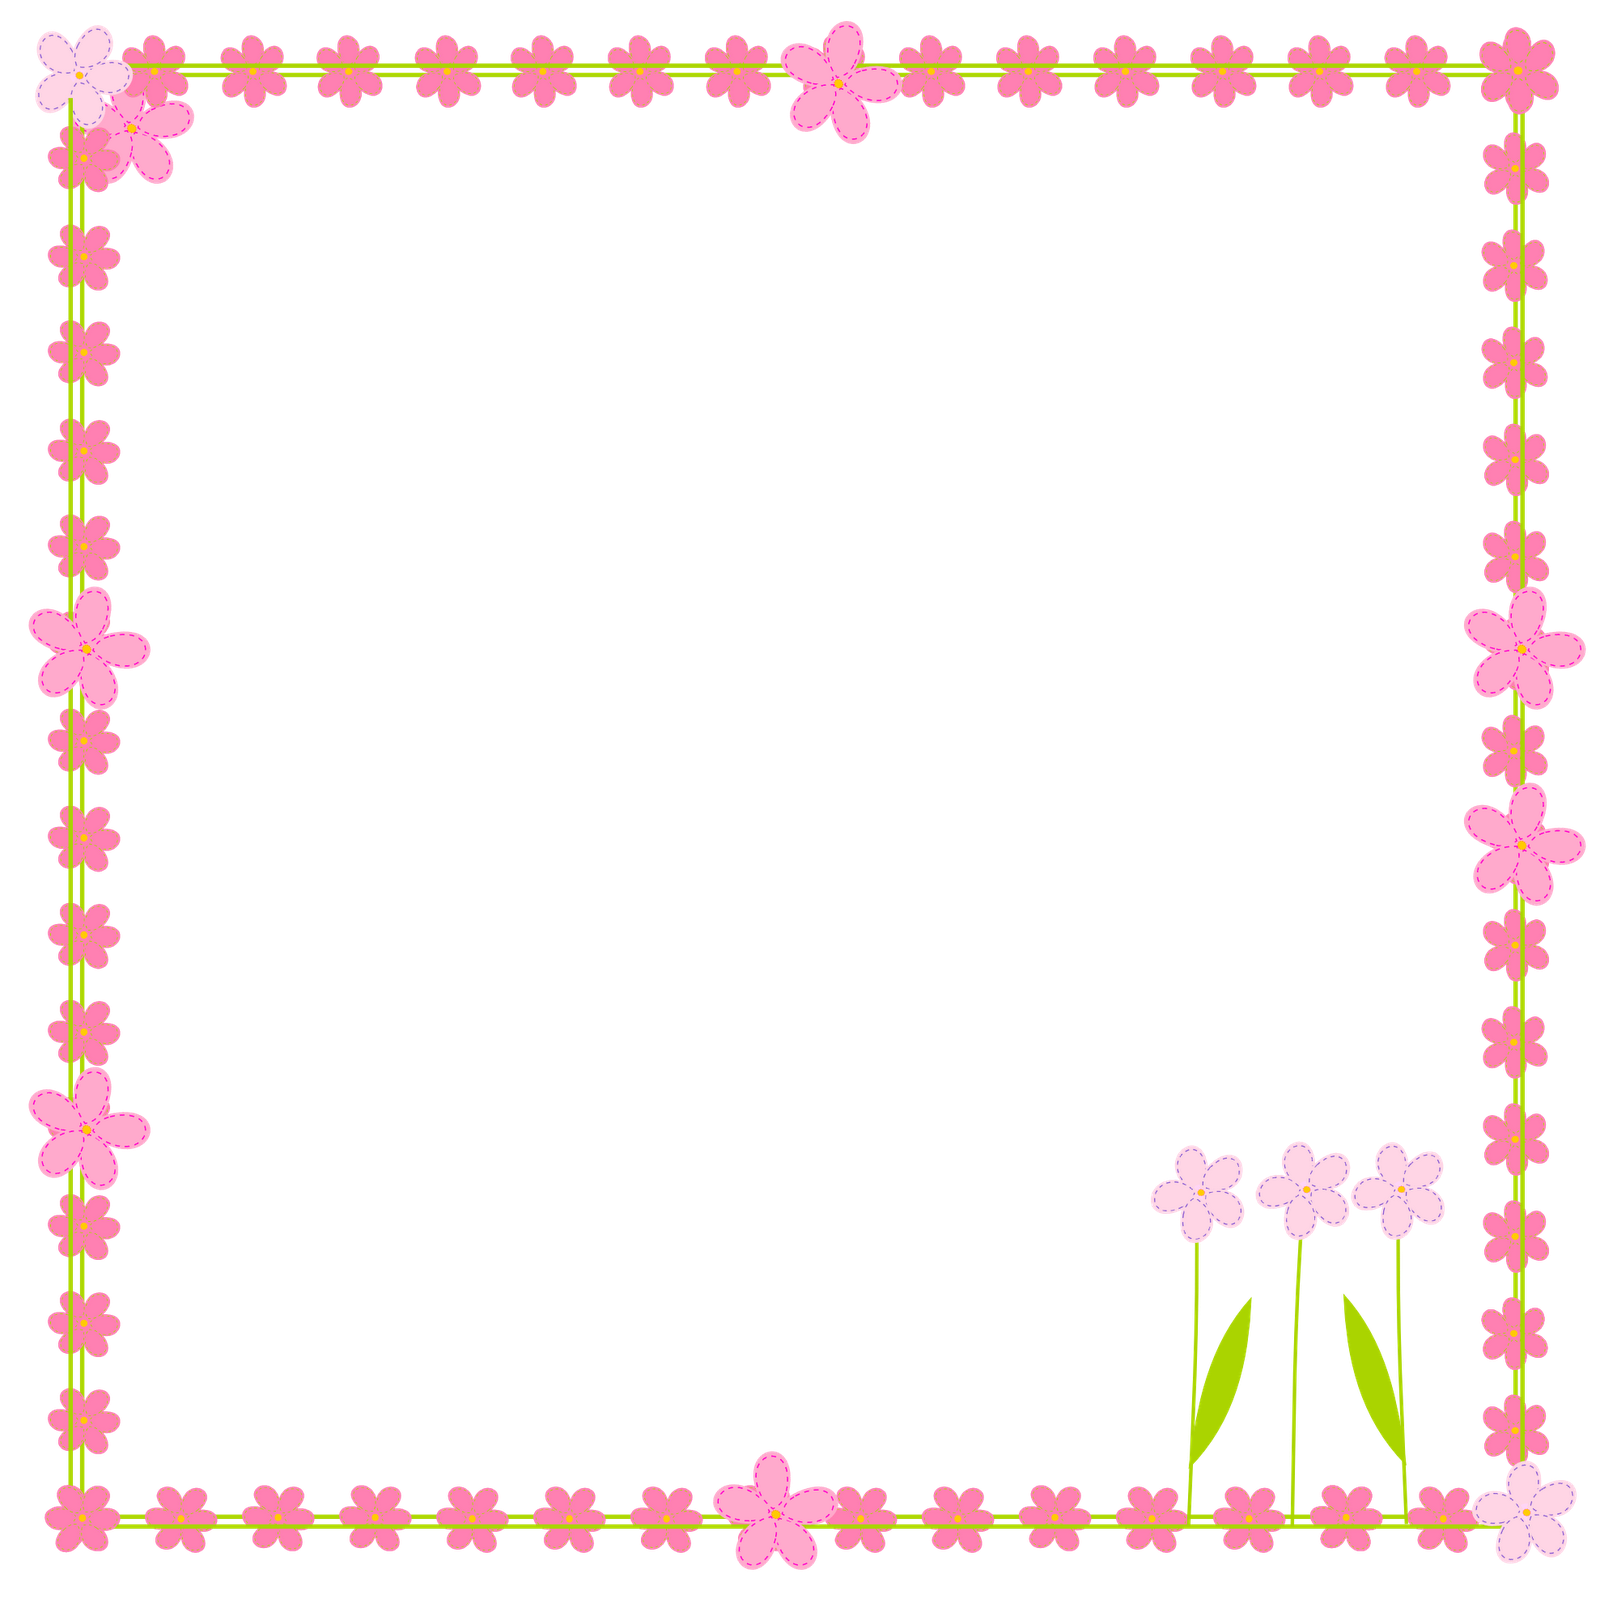 Flower With Transparent Background Clipart - Clipart Kid